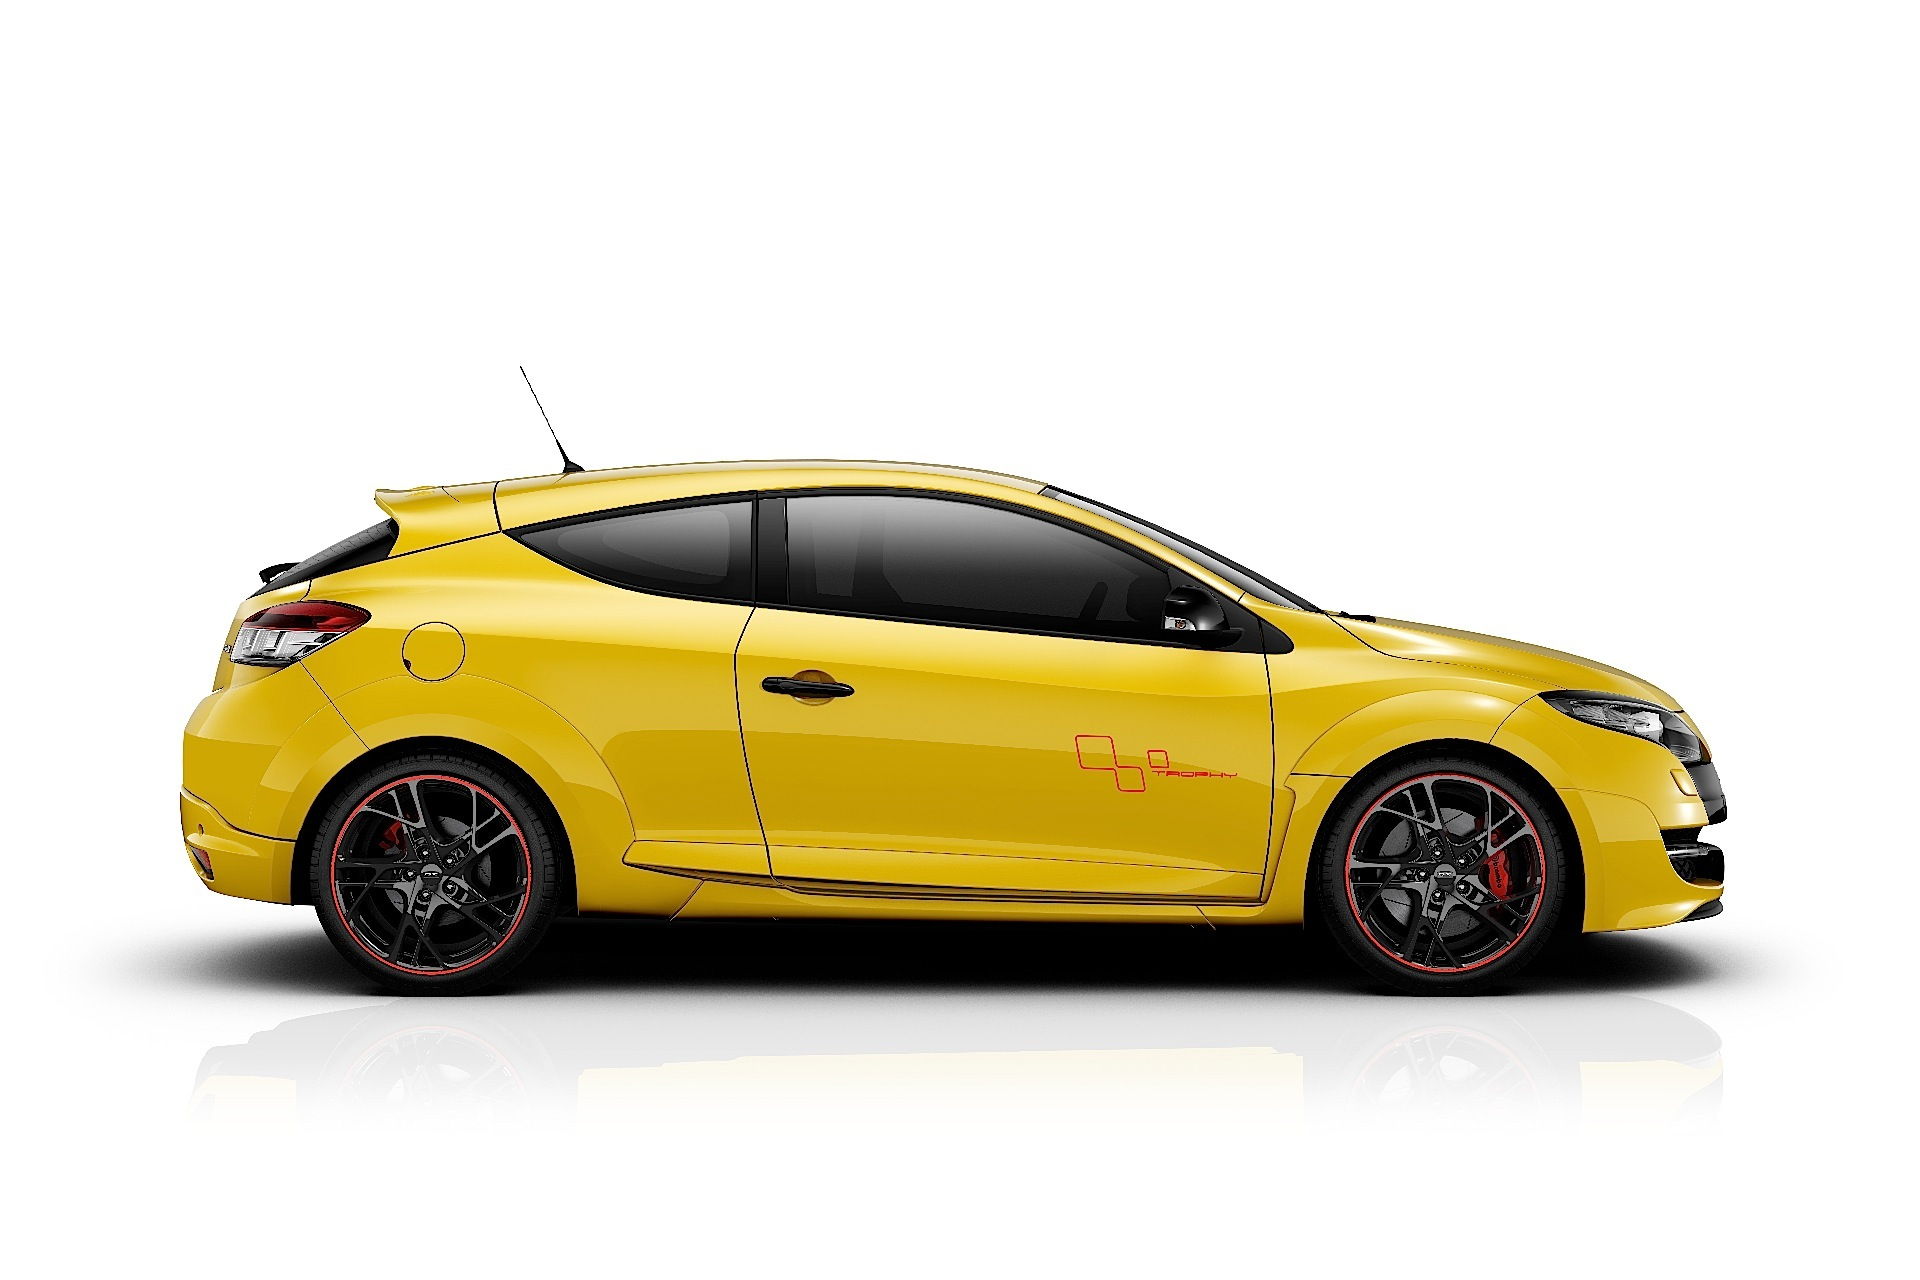 renault megane rs coupe specs photos 2009 2010 2011 2012 2013 autoevolution. Black Bedroom Furniture Sets. Home Design Ideas